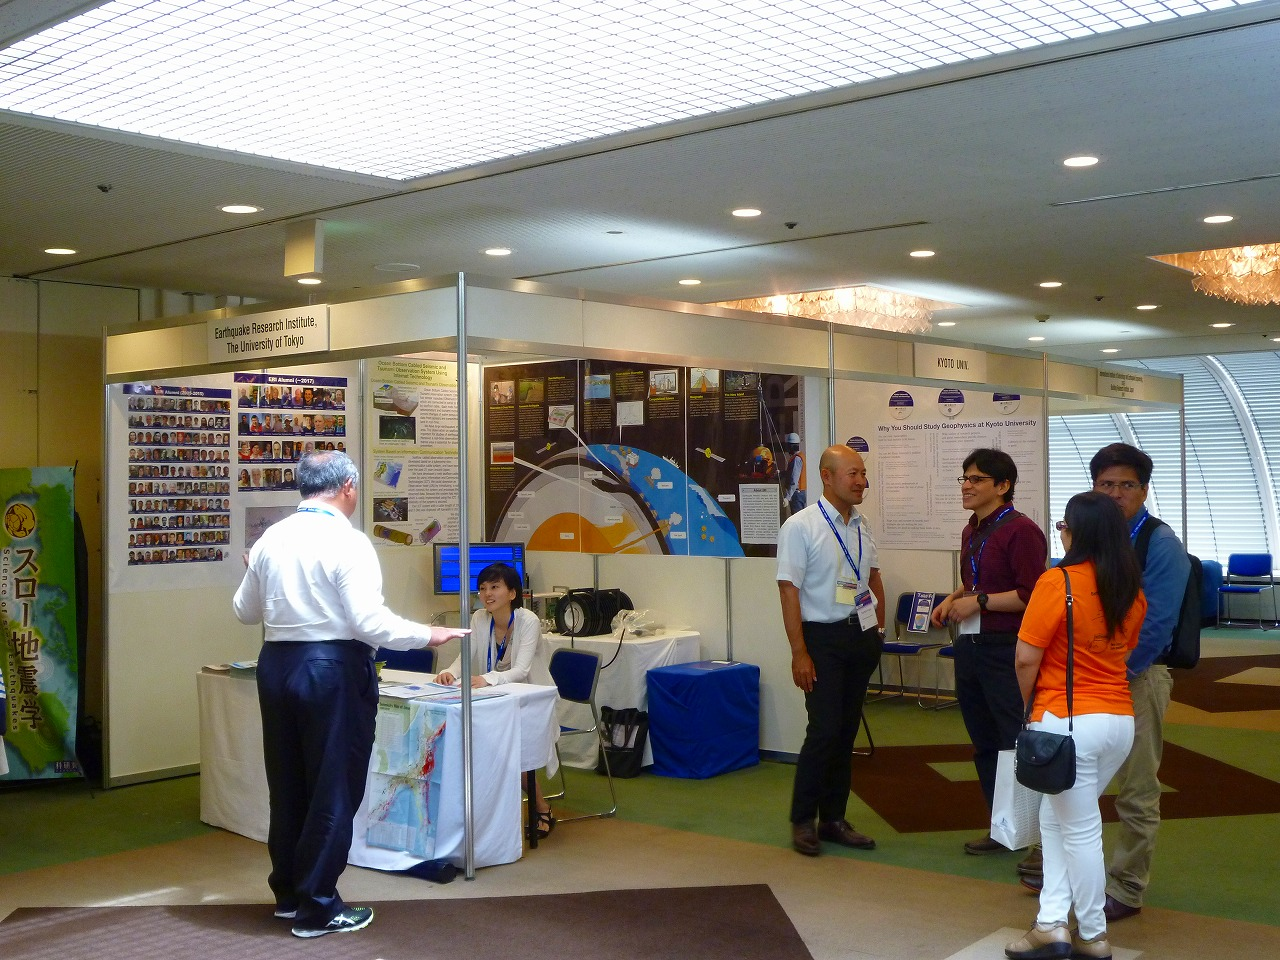 Exhibition at IASPEI2017